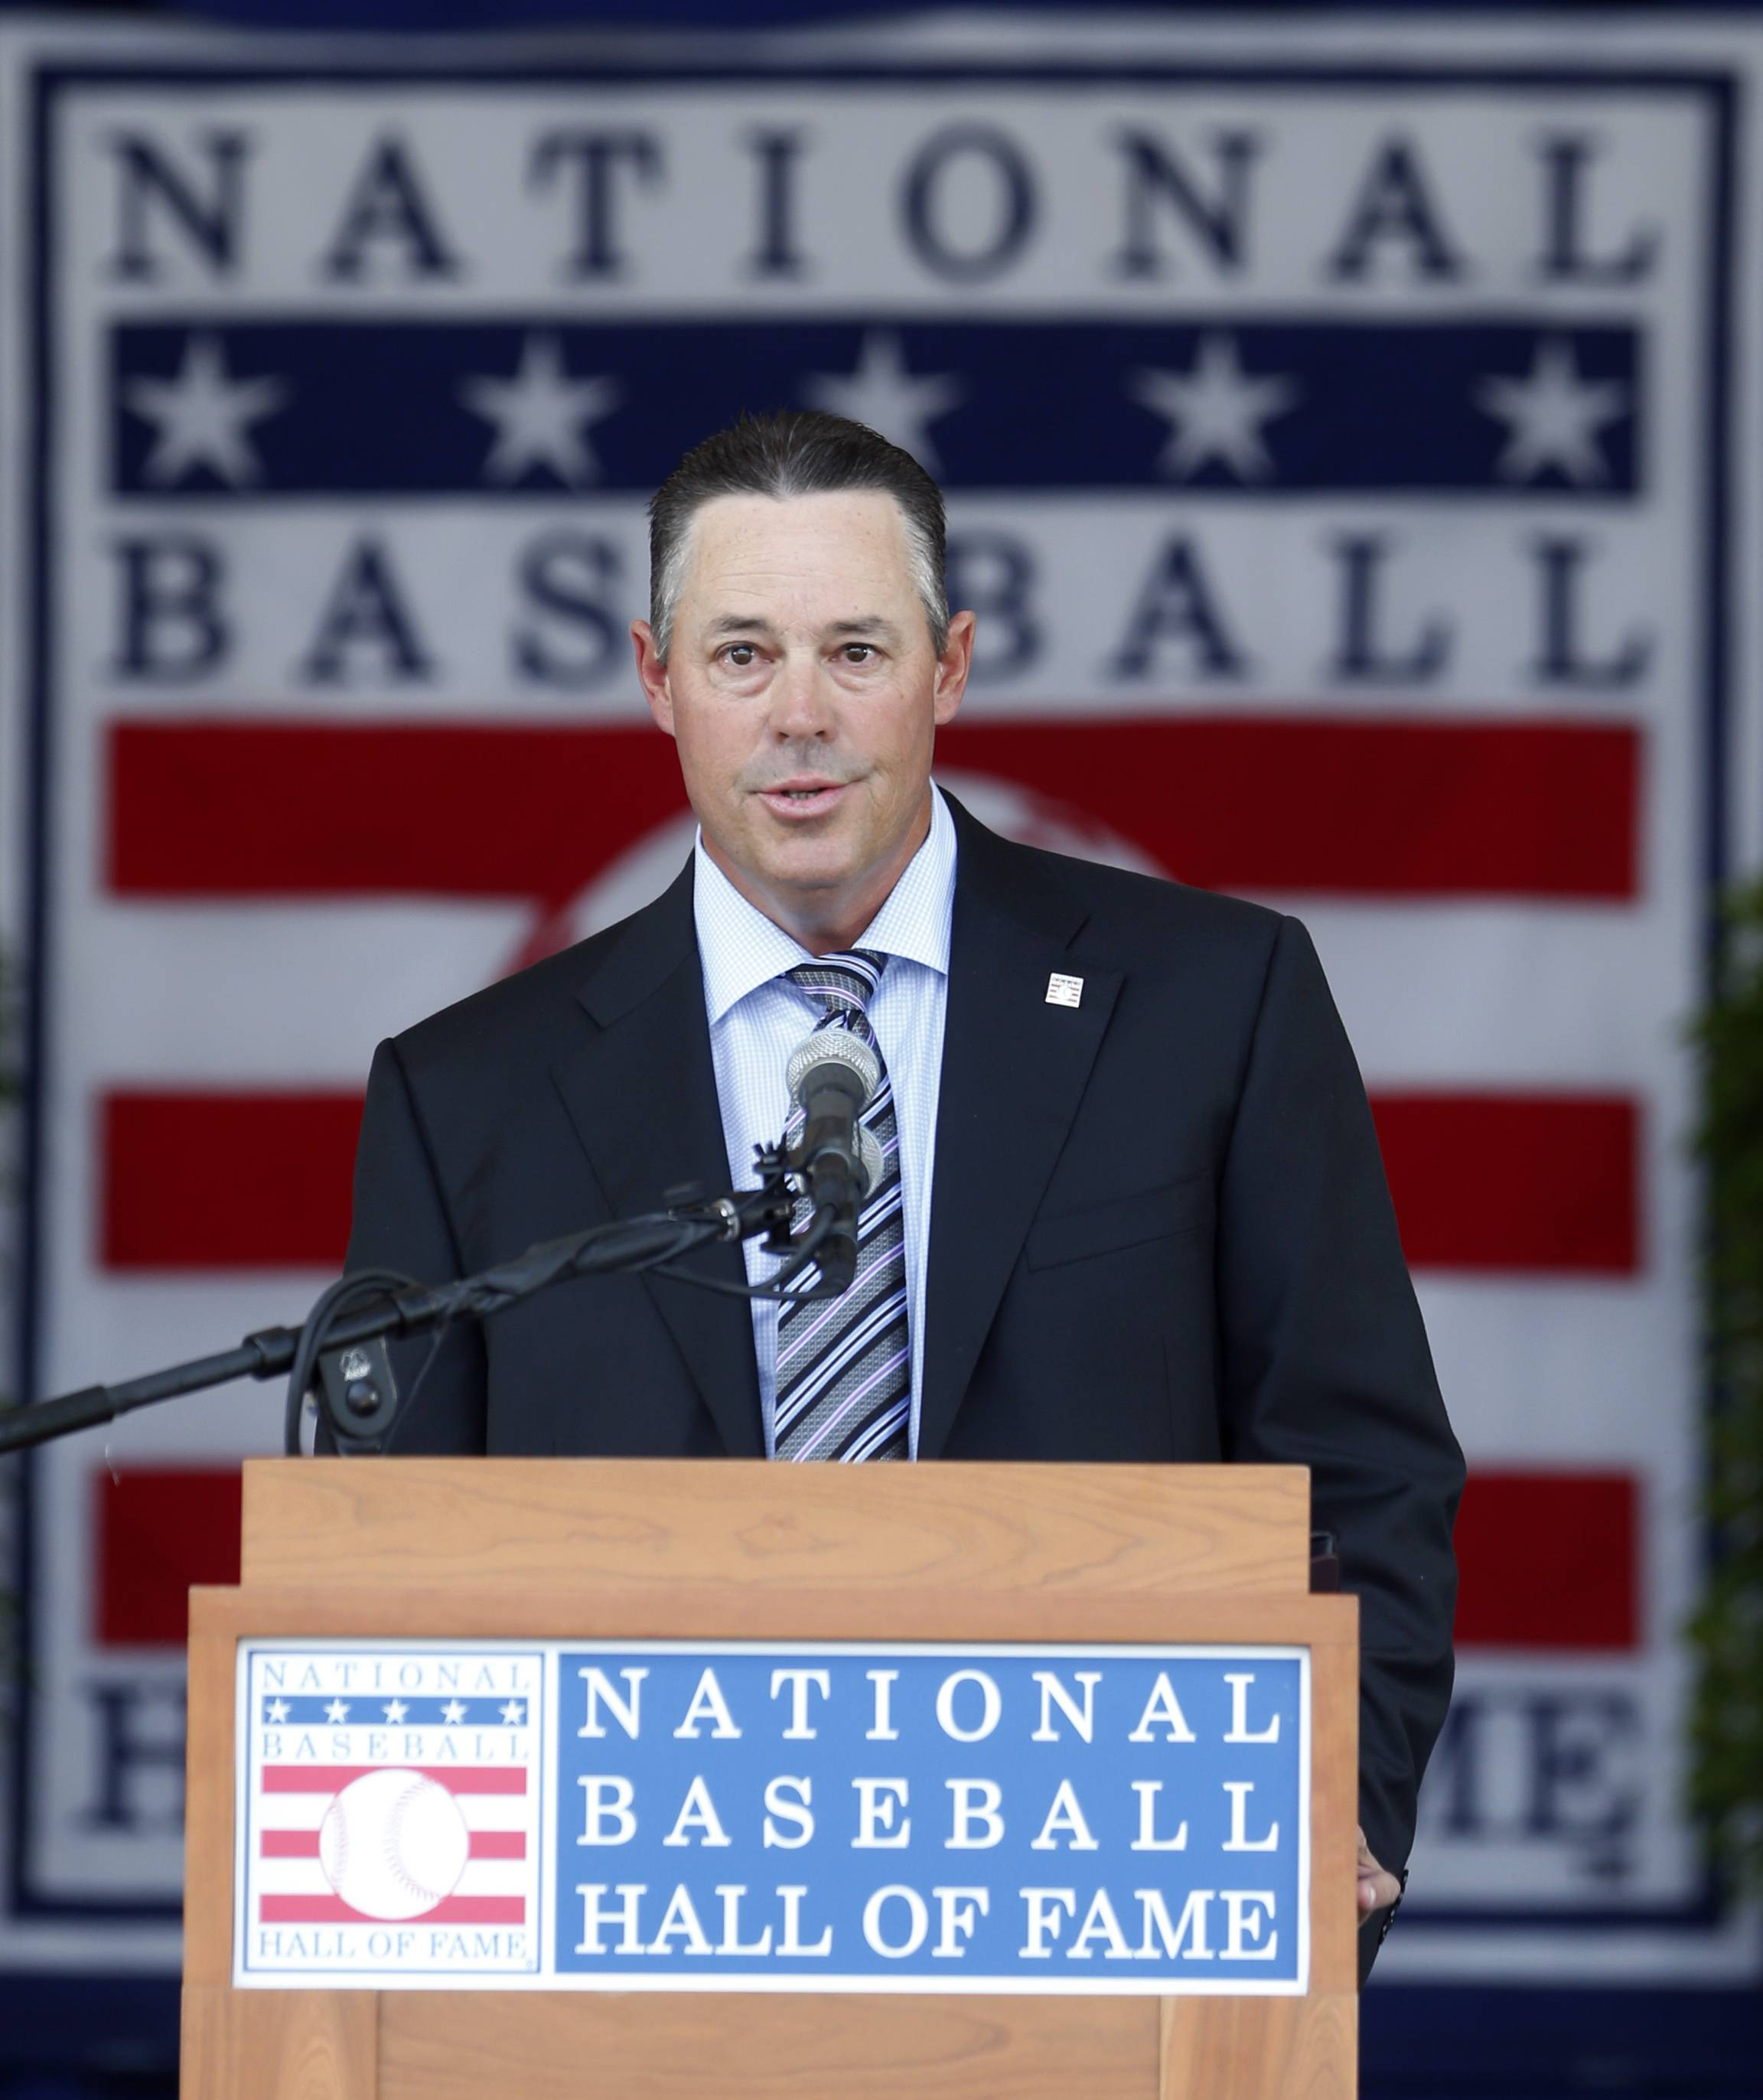 National Baseball Hall of Fame inductee Greg Maddux speaks during an induction ceremony at the Clark Sports Center on Sunday, July 27, 2014, in Cooperstown, N.Y.